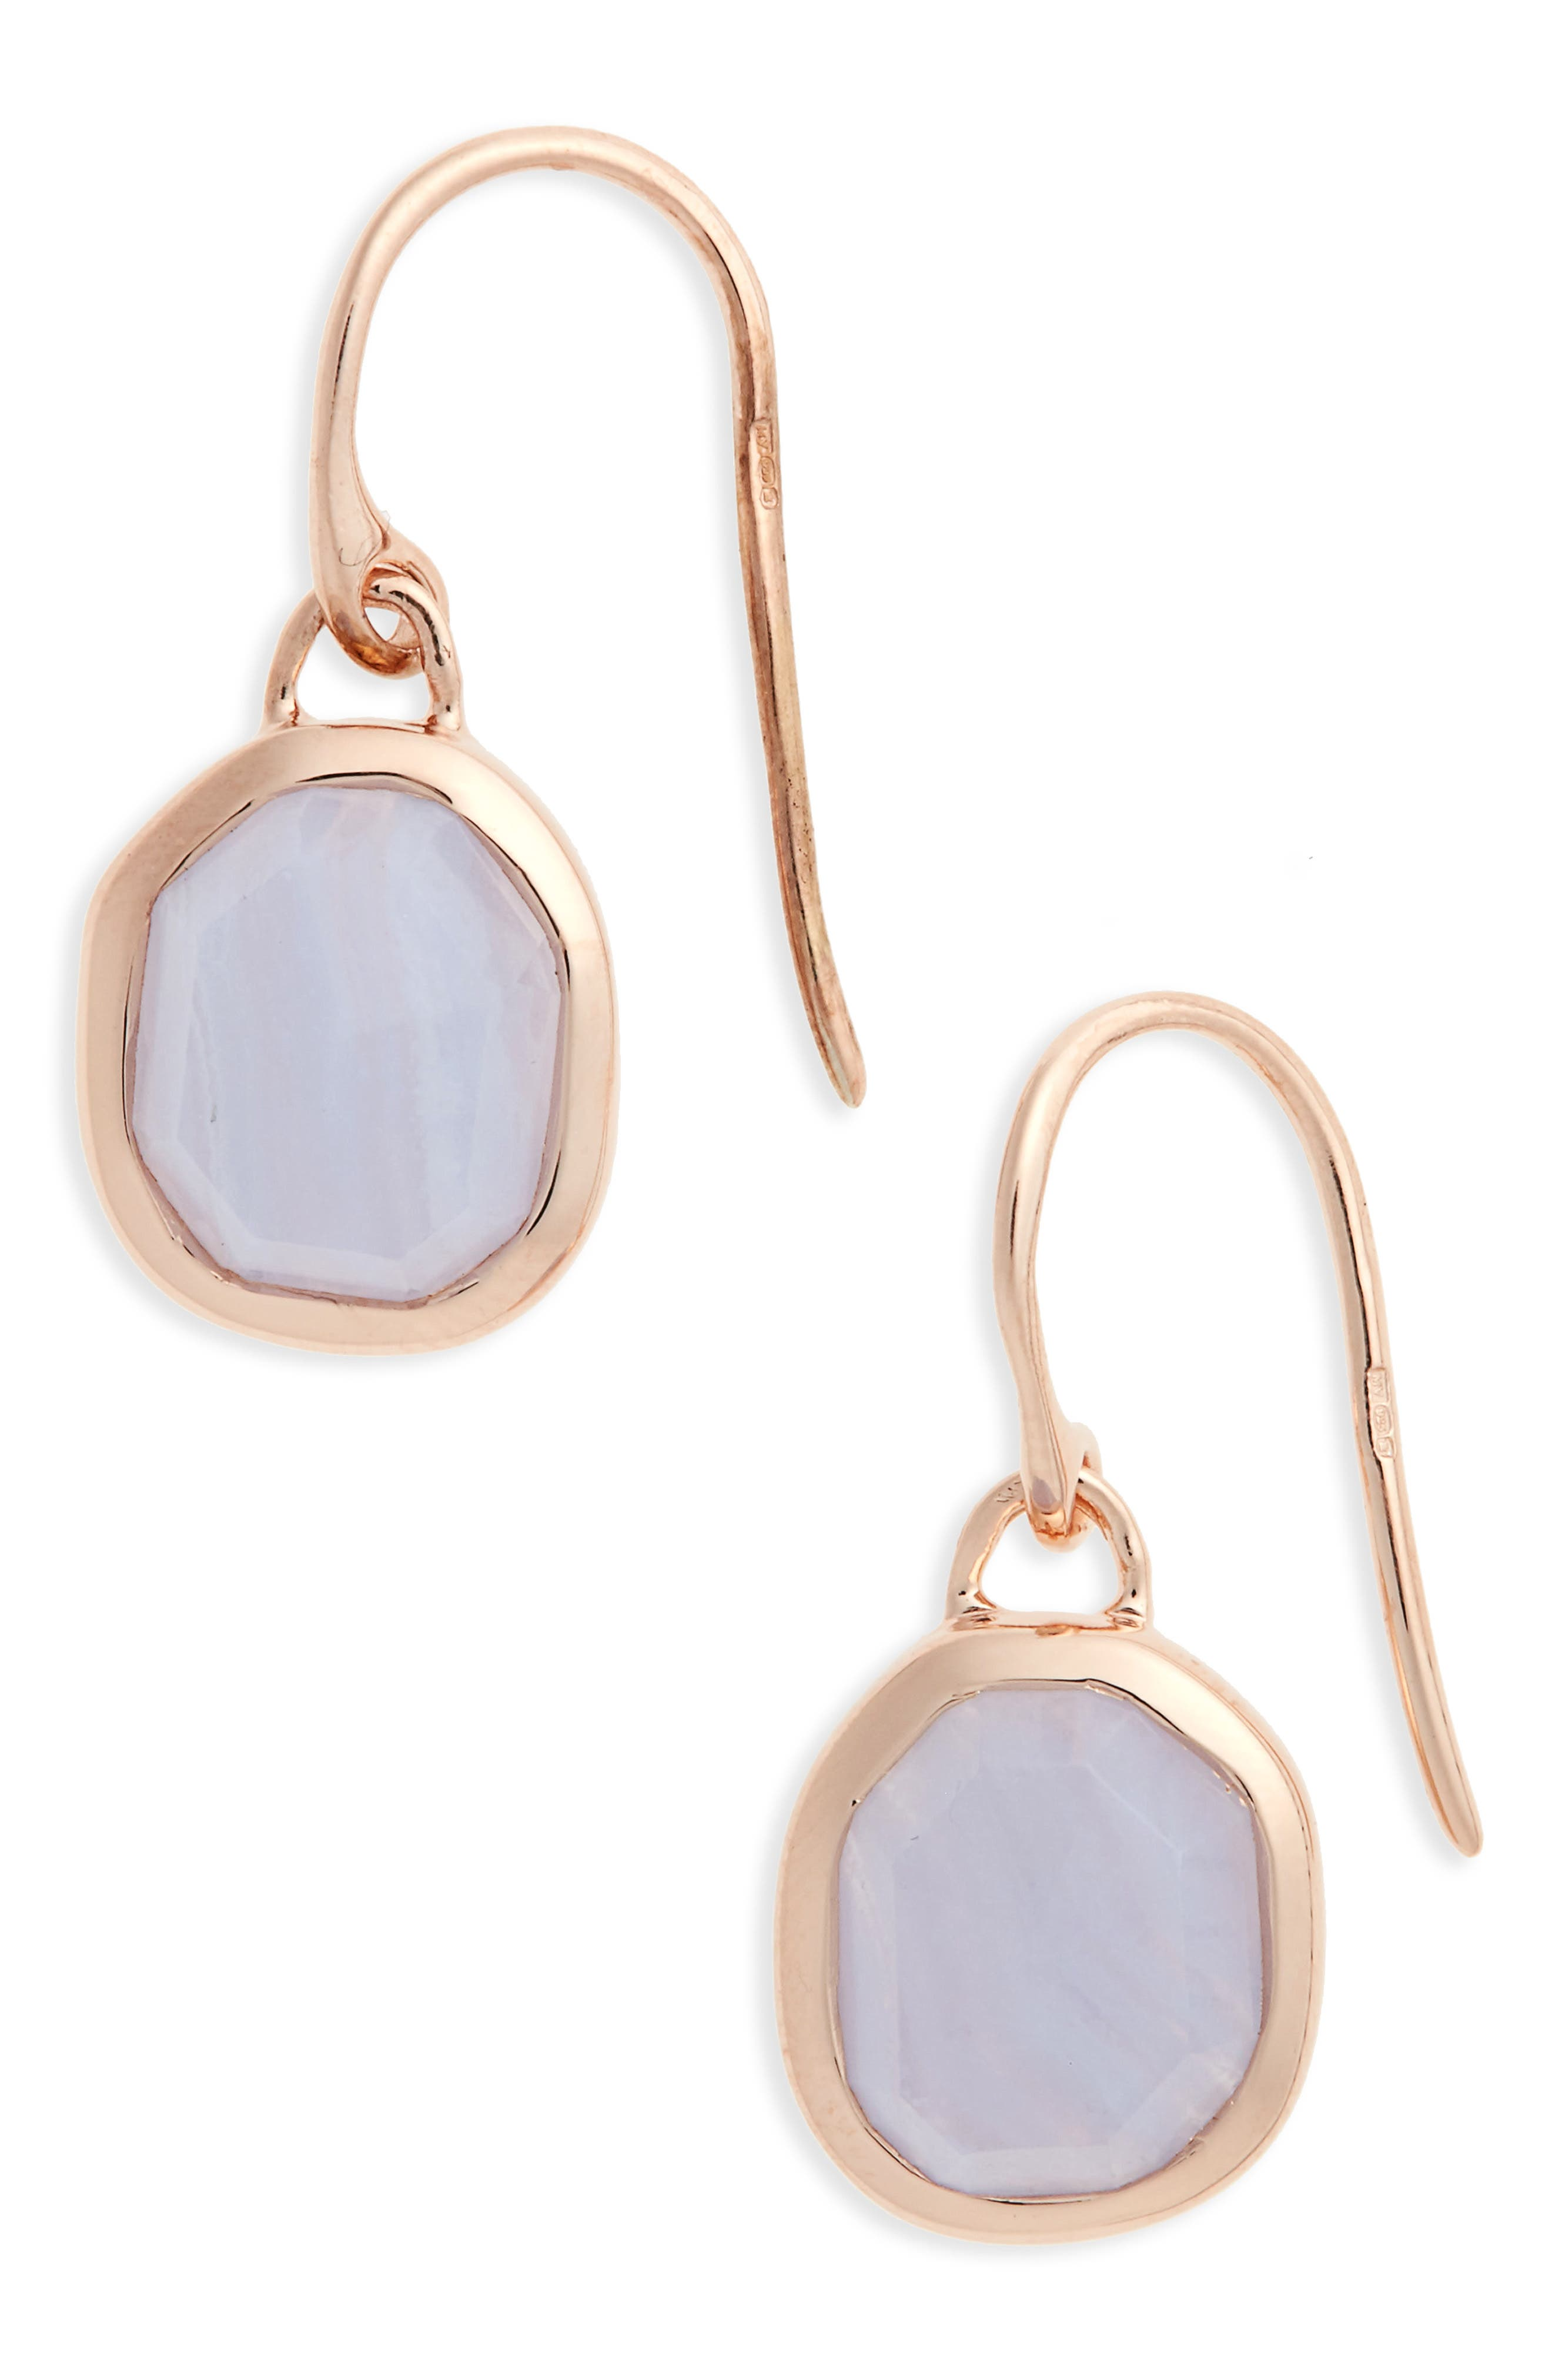 Alternate Image 1 Selected - Monica Vinader Siren Semiprecious Stone Drop Earrings